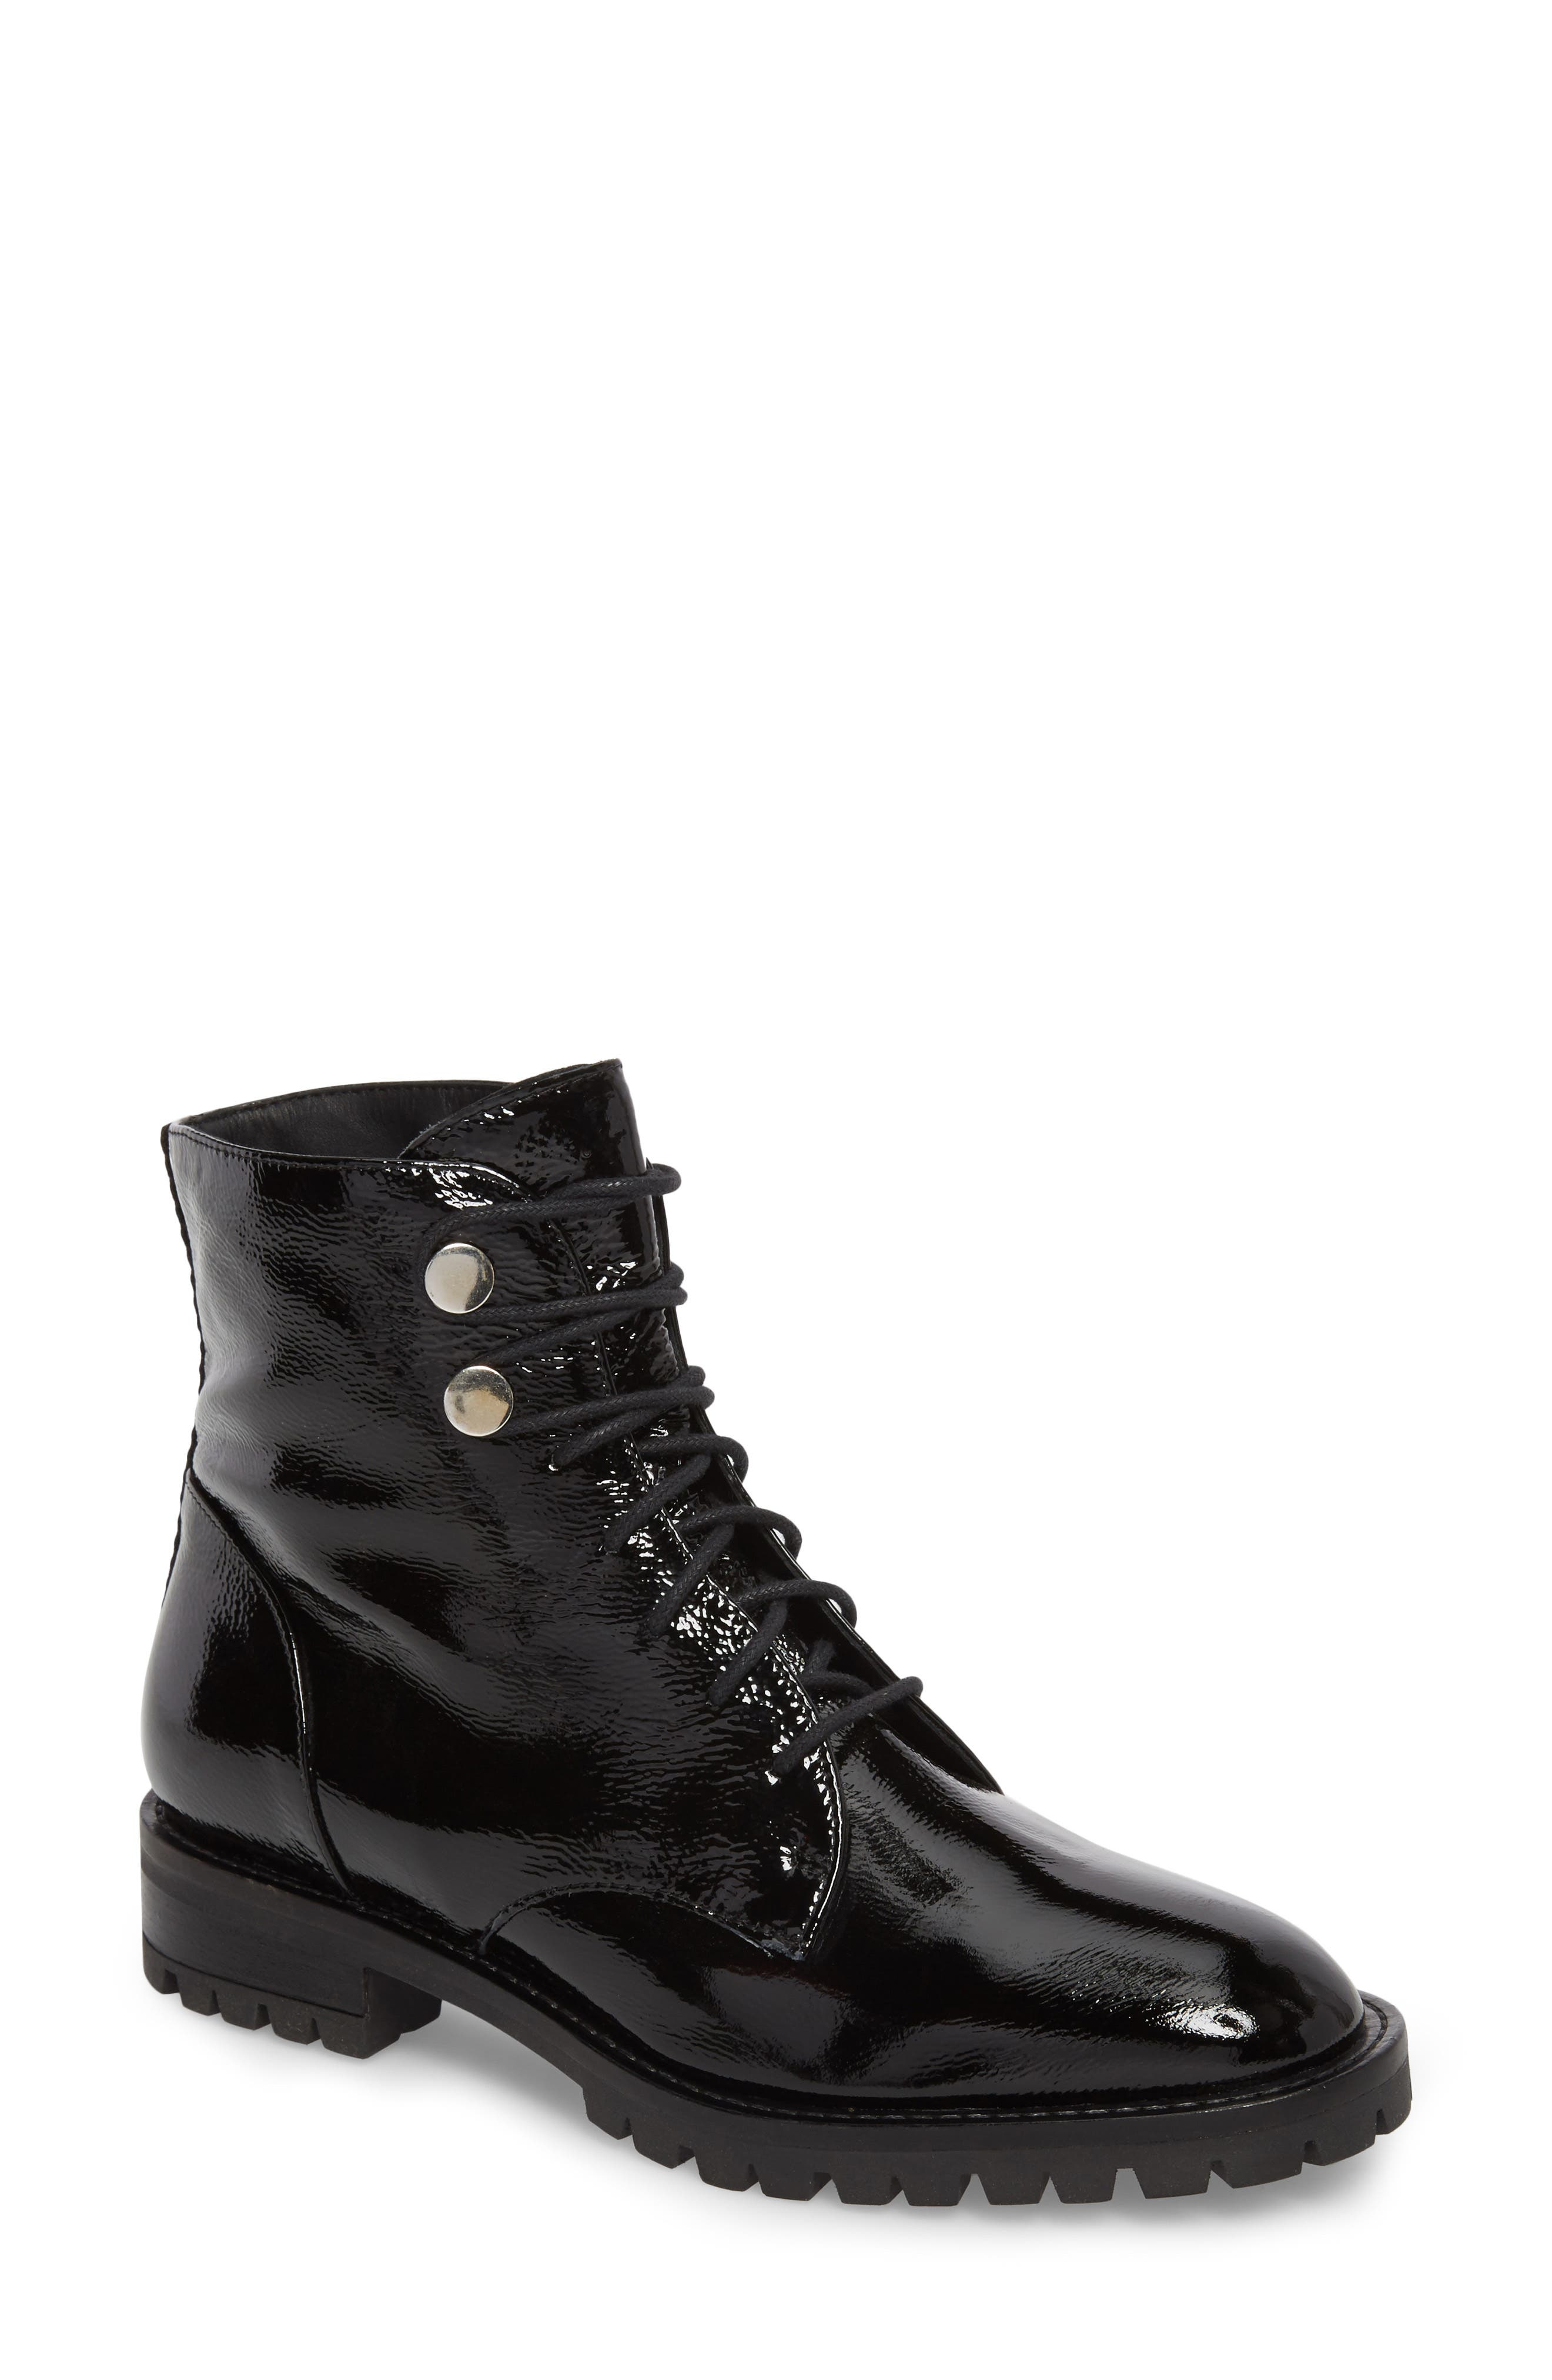 Alternate Image 1 Selected - Kenneth Cole New York Francesca Lace-Up Boot (Women)